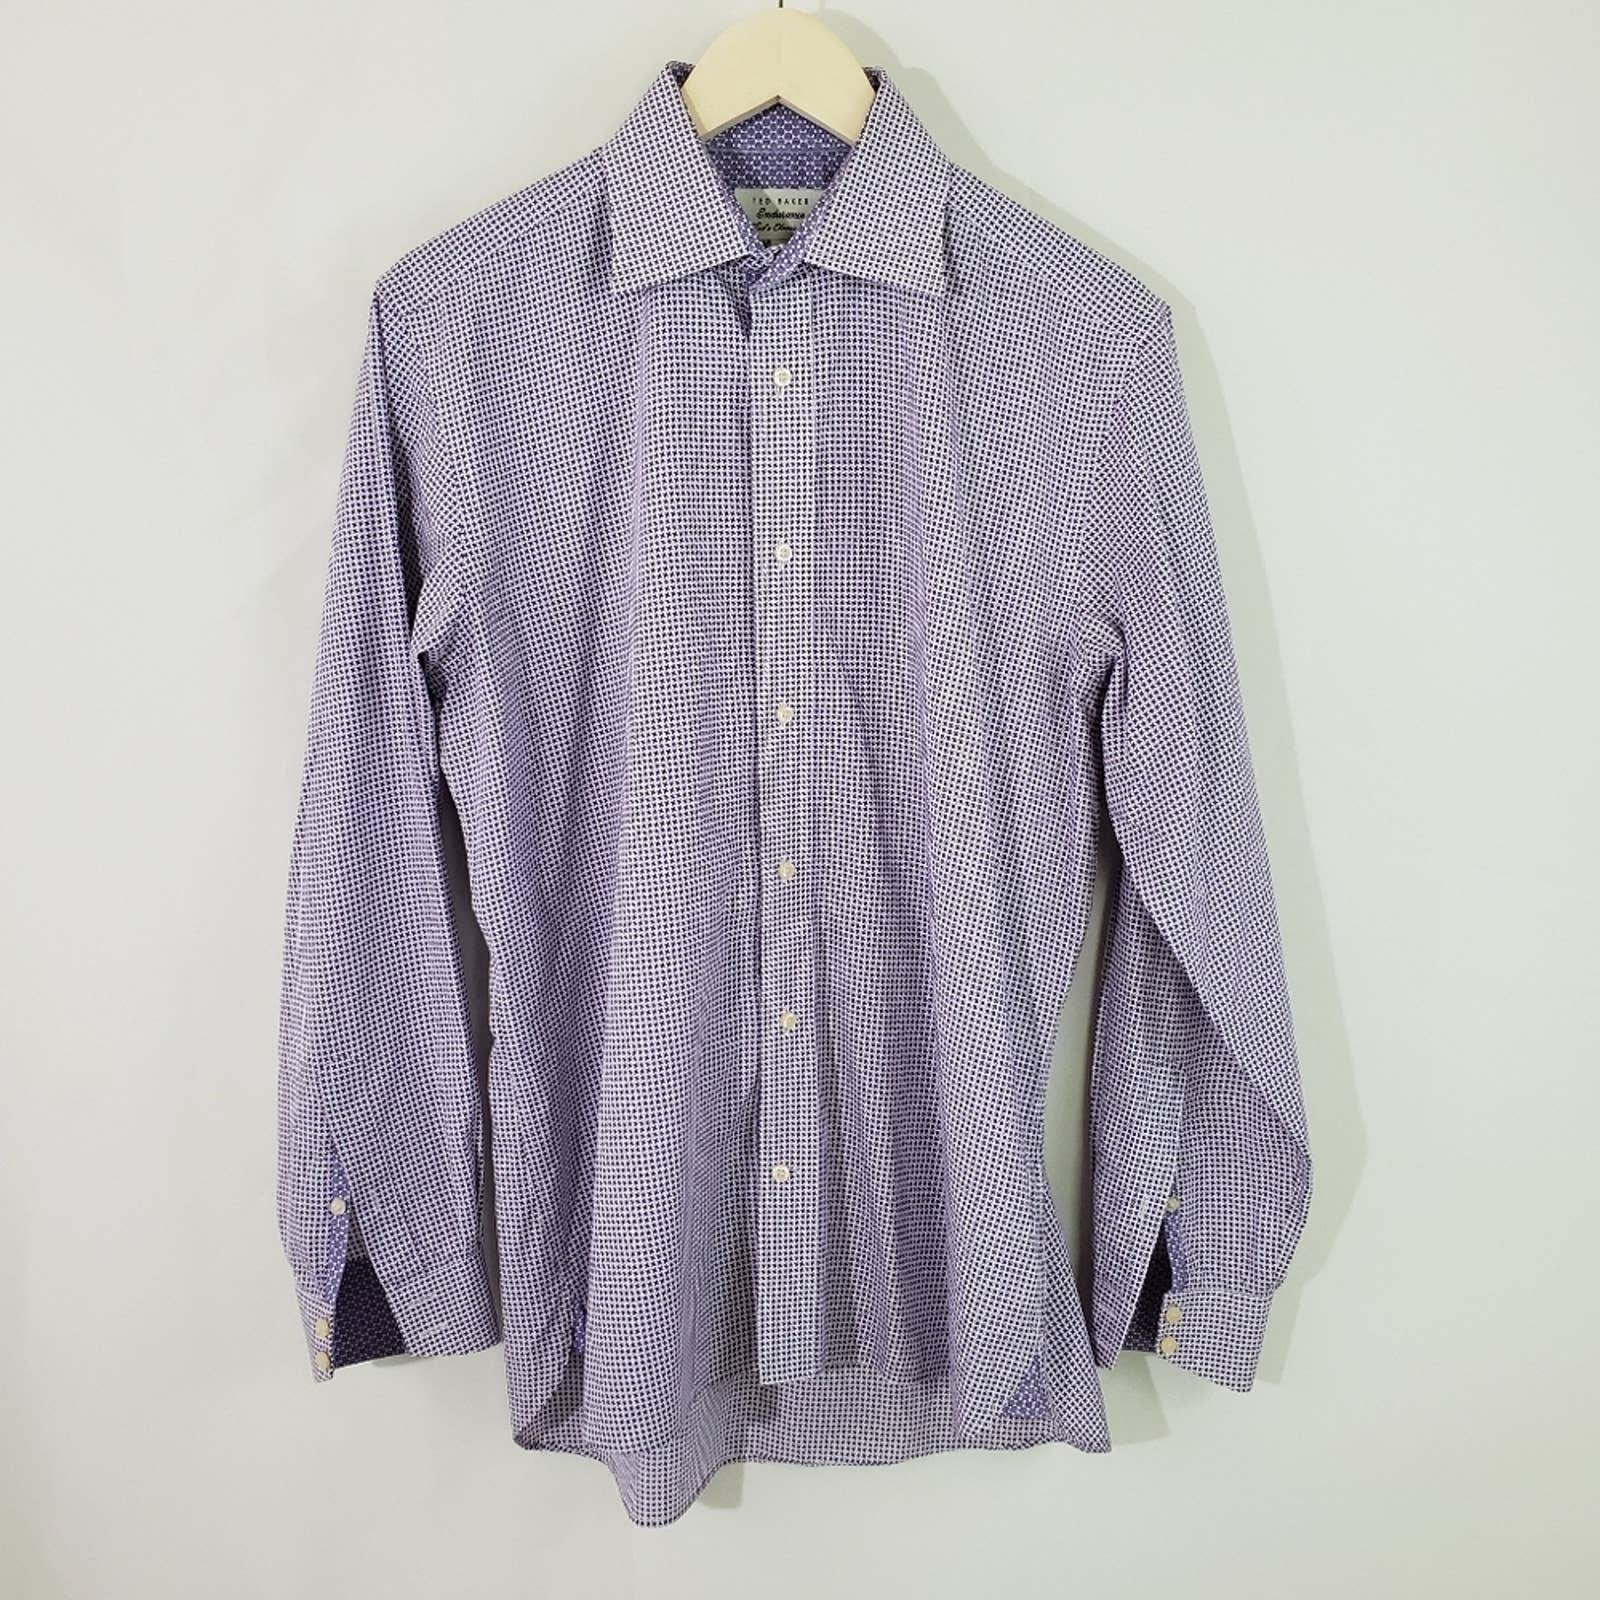 TED BAKER Men's Purple Star Print Shirt